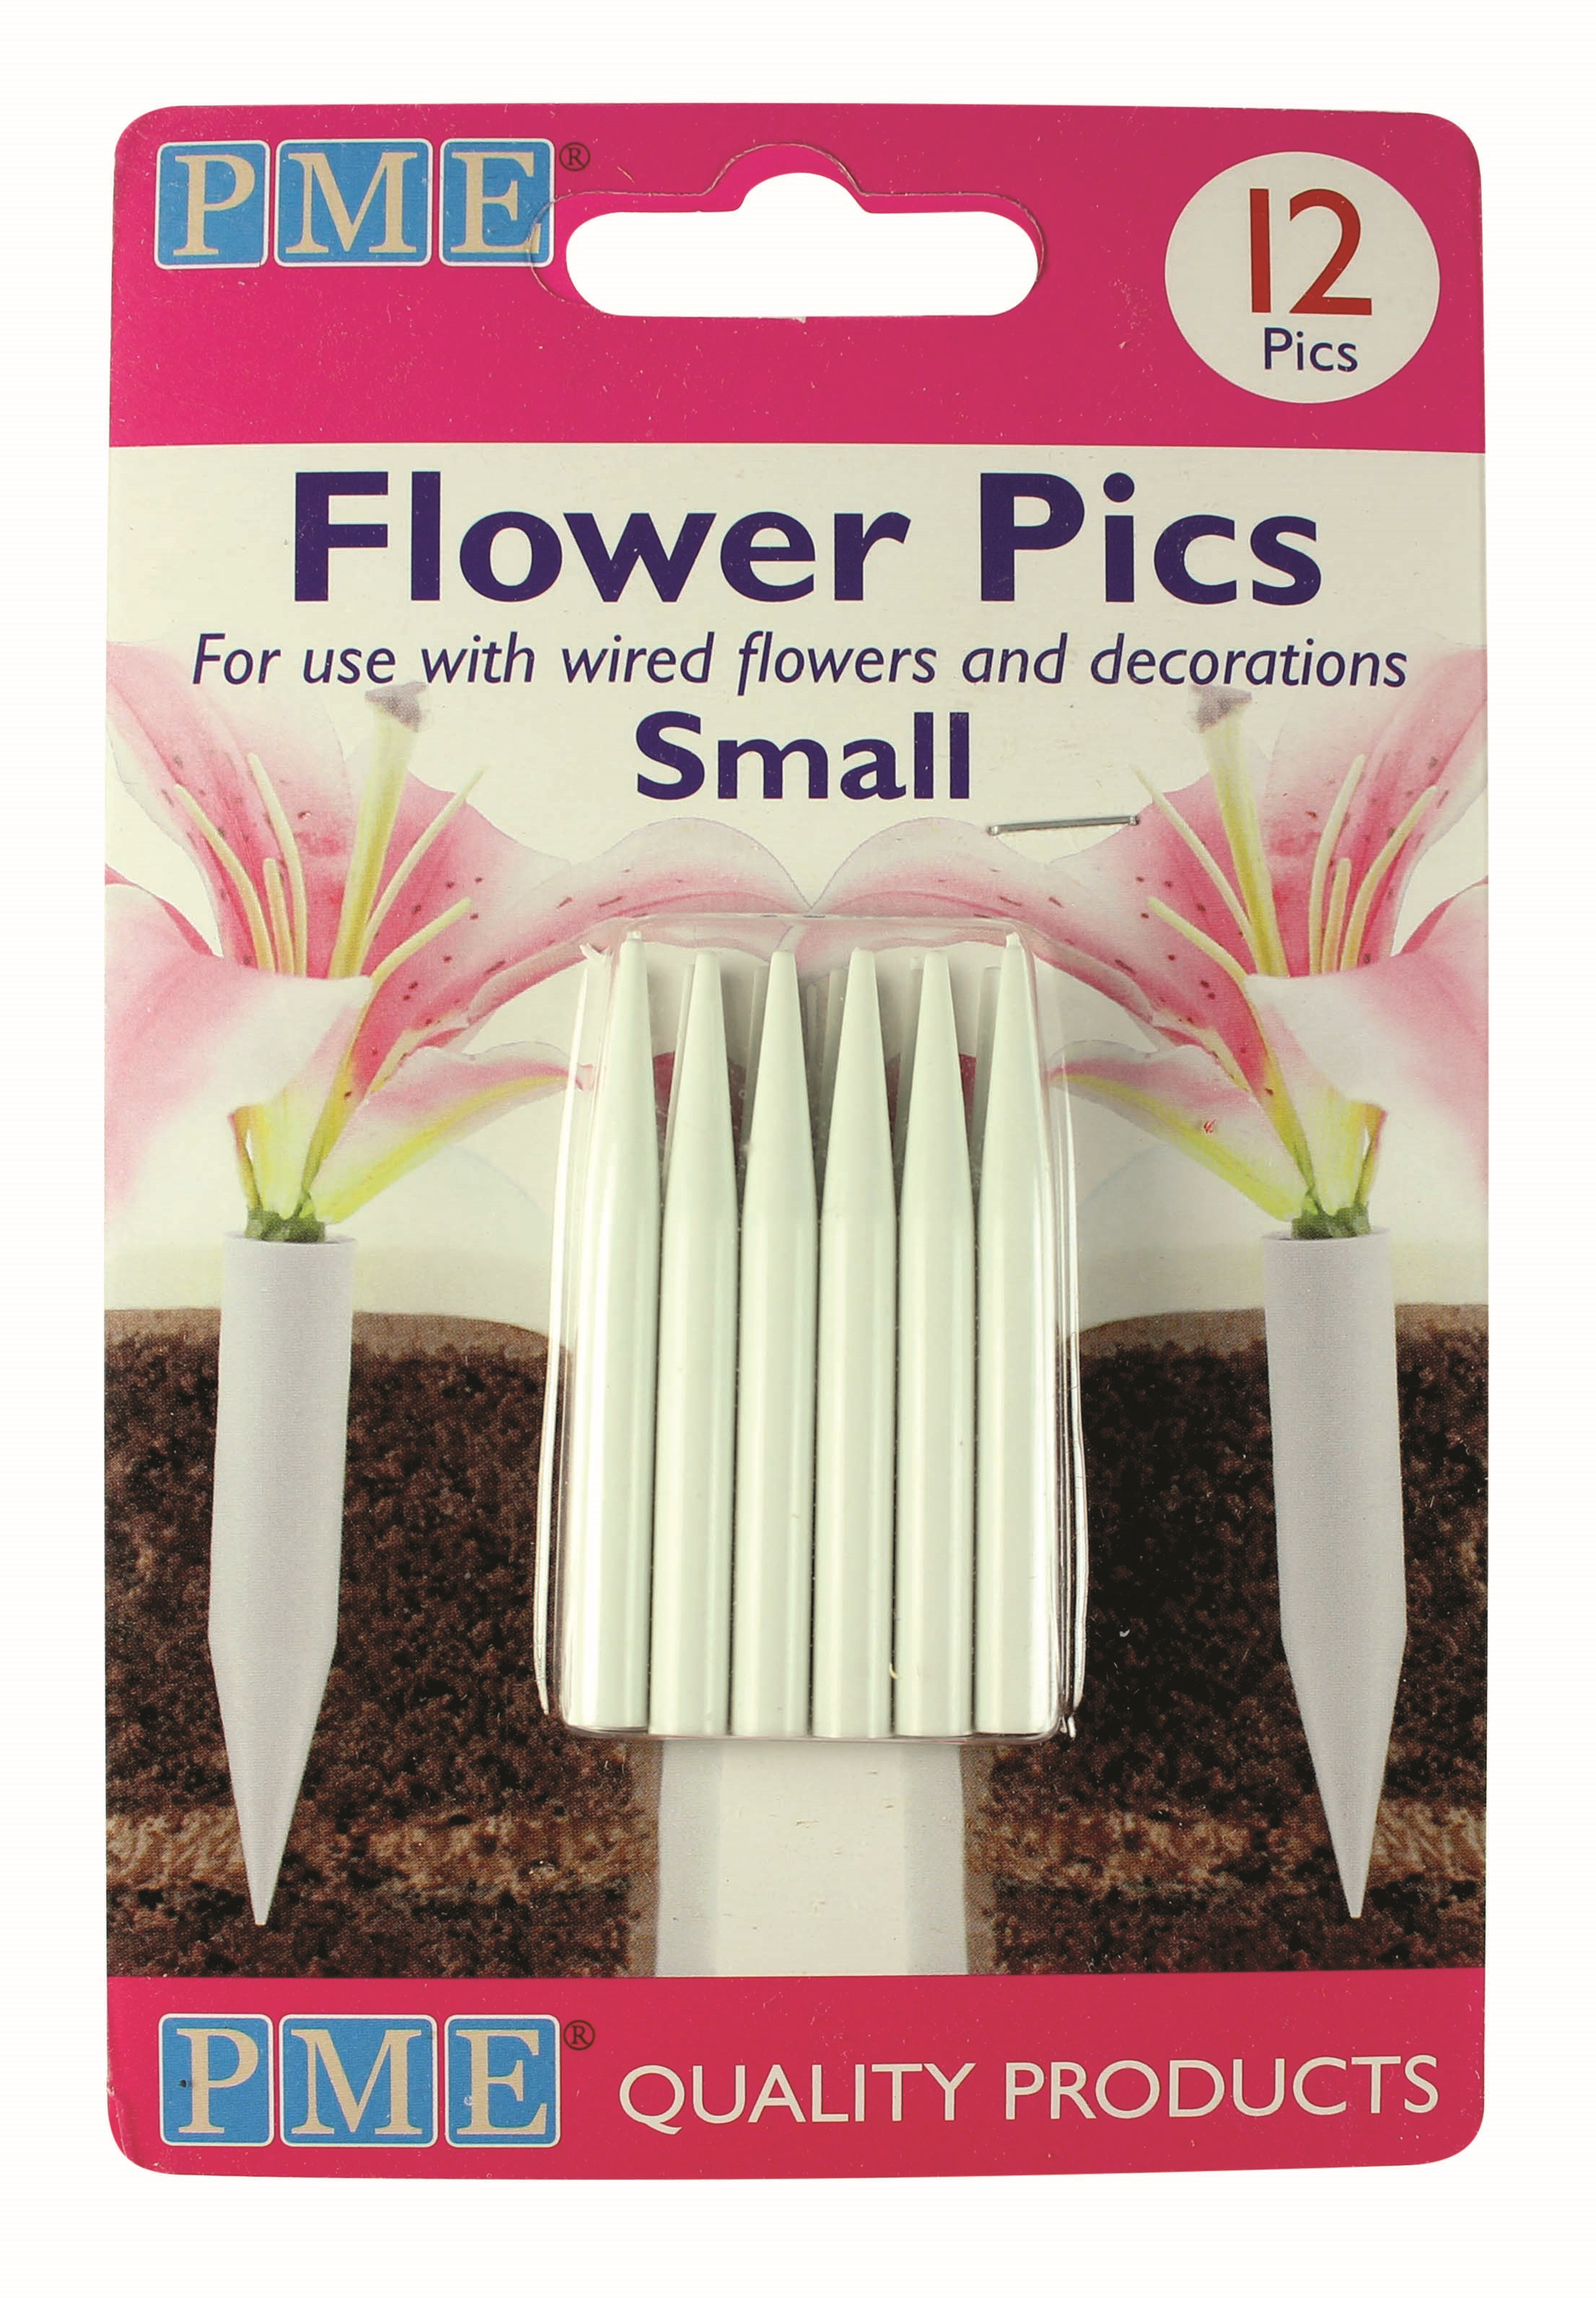 Pme Flower Floral Picks Pics Sugarcraft Flower Holder Cake